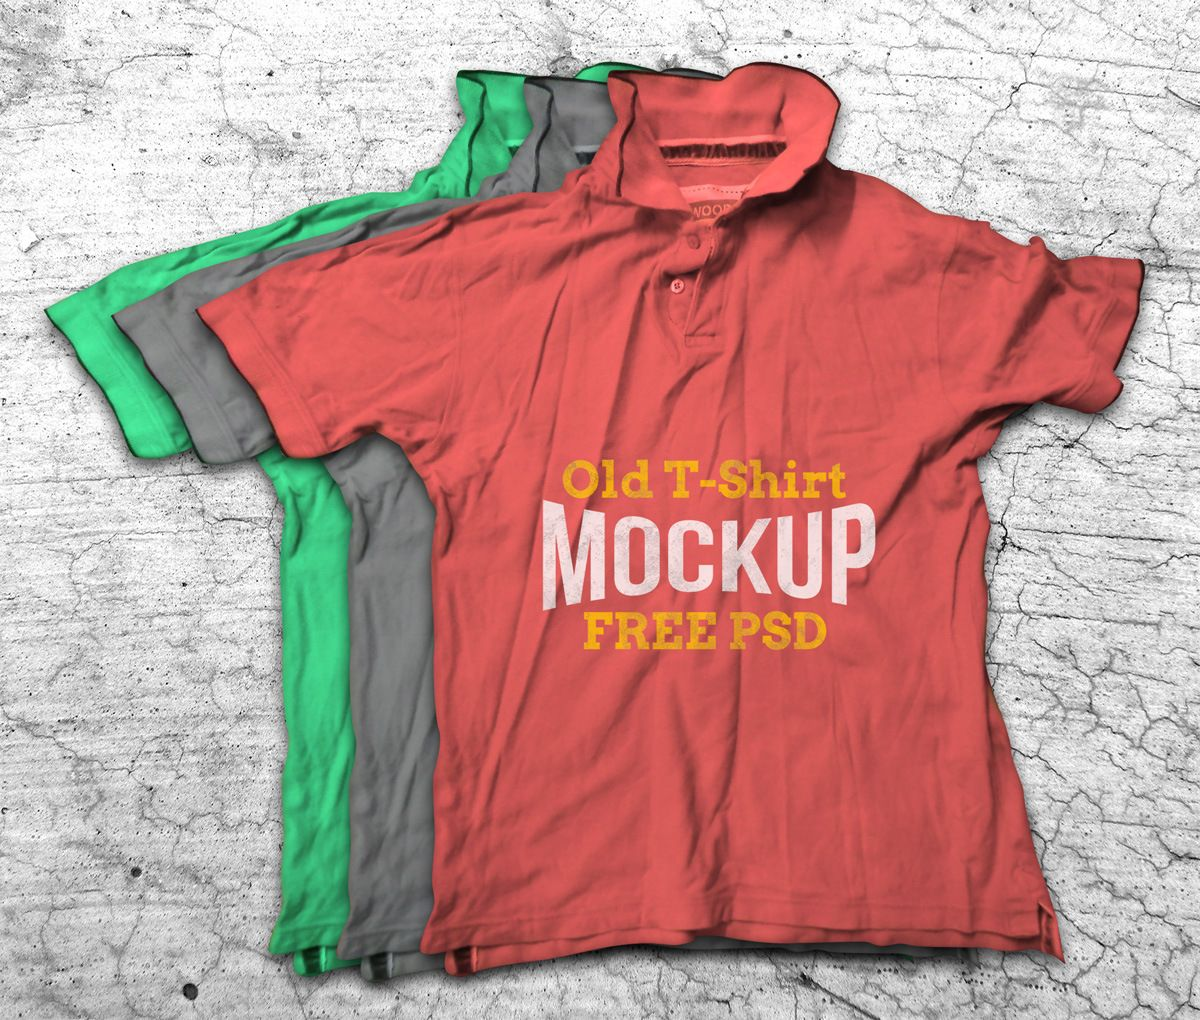 Download Old Crumpled T Shirt Mockup Fribly Shirt Mockup Tshirt Mockup Mockup